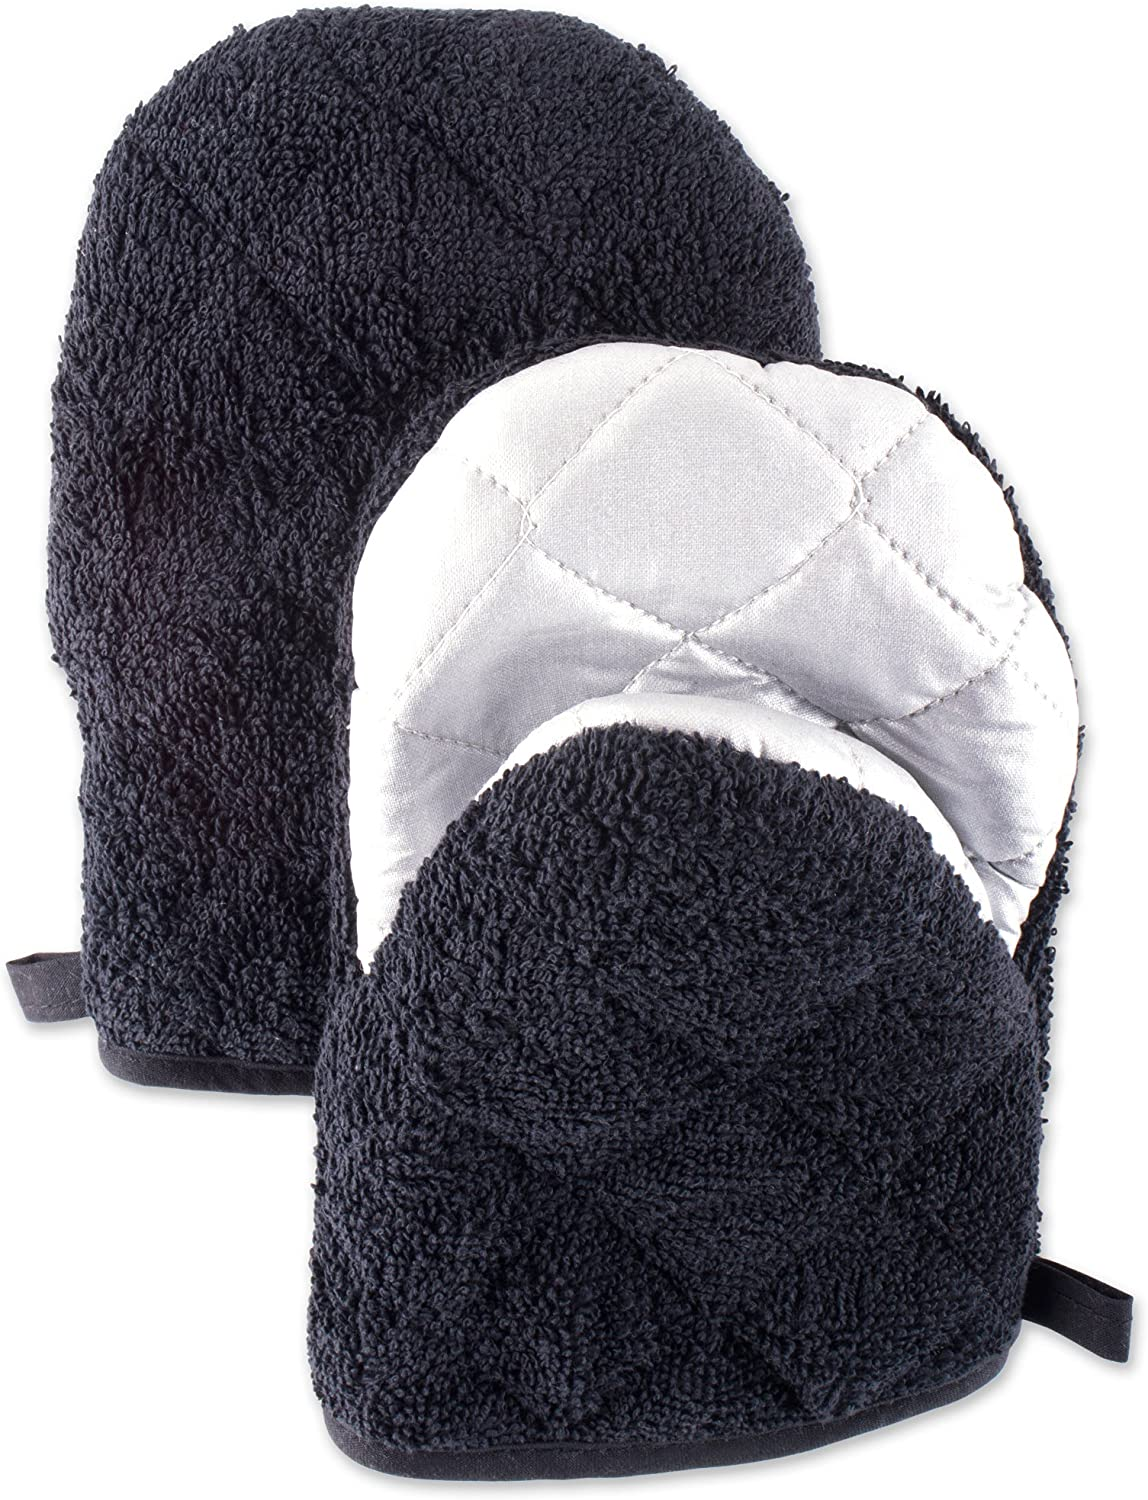 DII 100% Cotton, Quilted Terry Oven Set Machine Washable, Heat Resistant with Hanging Loop, Short Mitt, Black 2 Piece